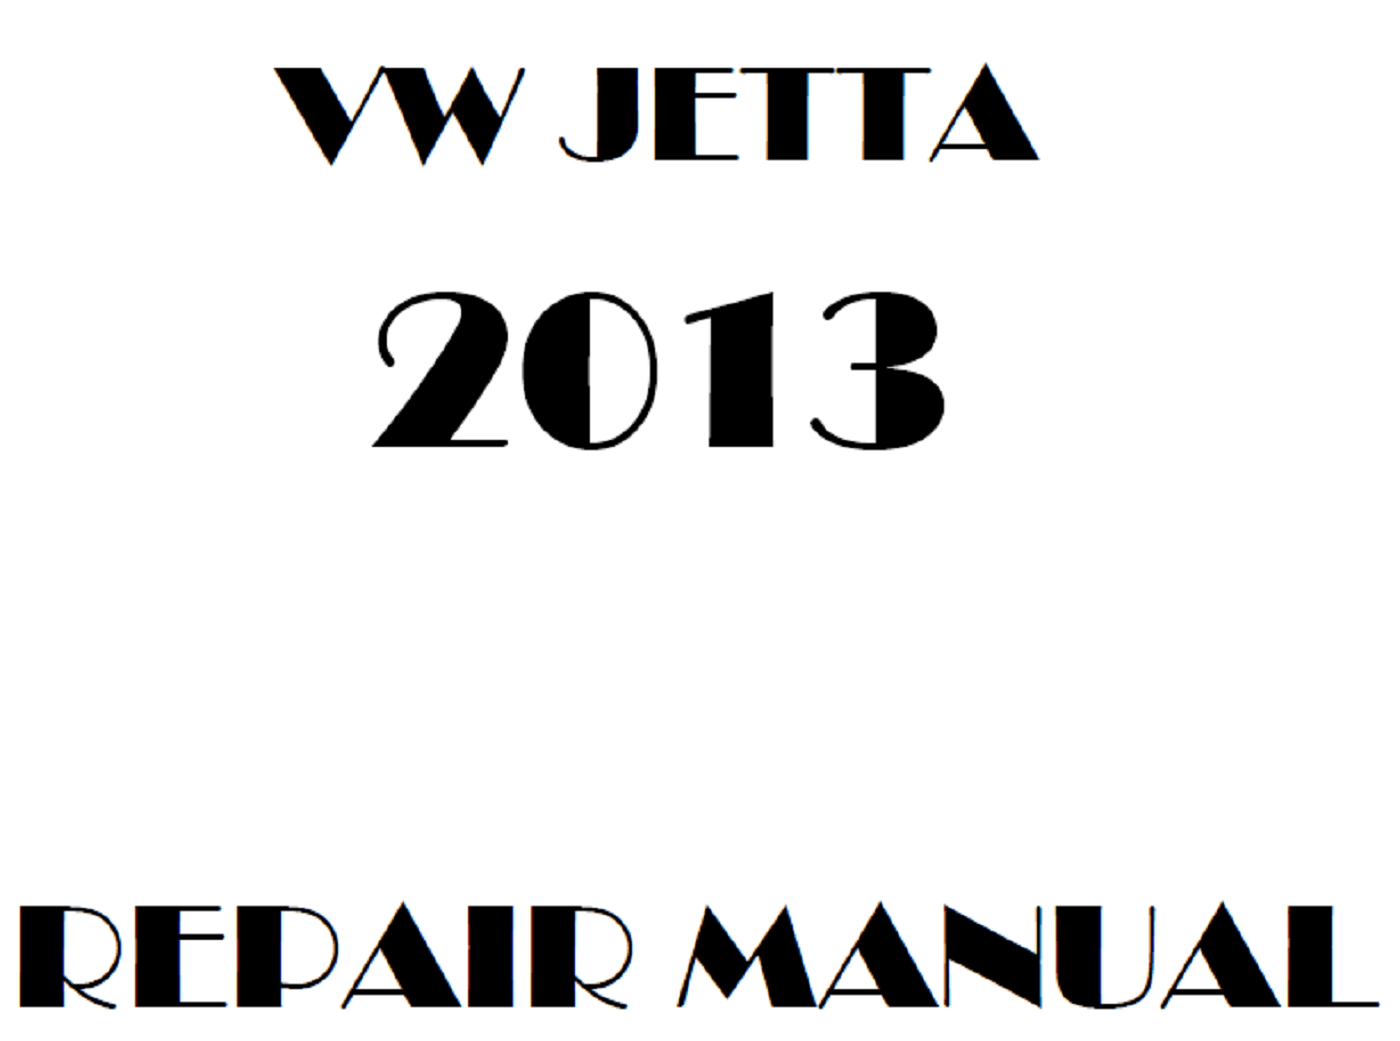 2013 Volkswagen Jetta repair manual